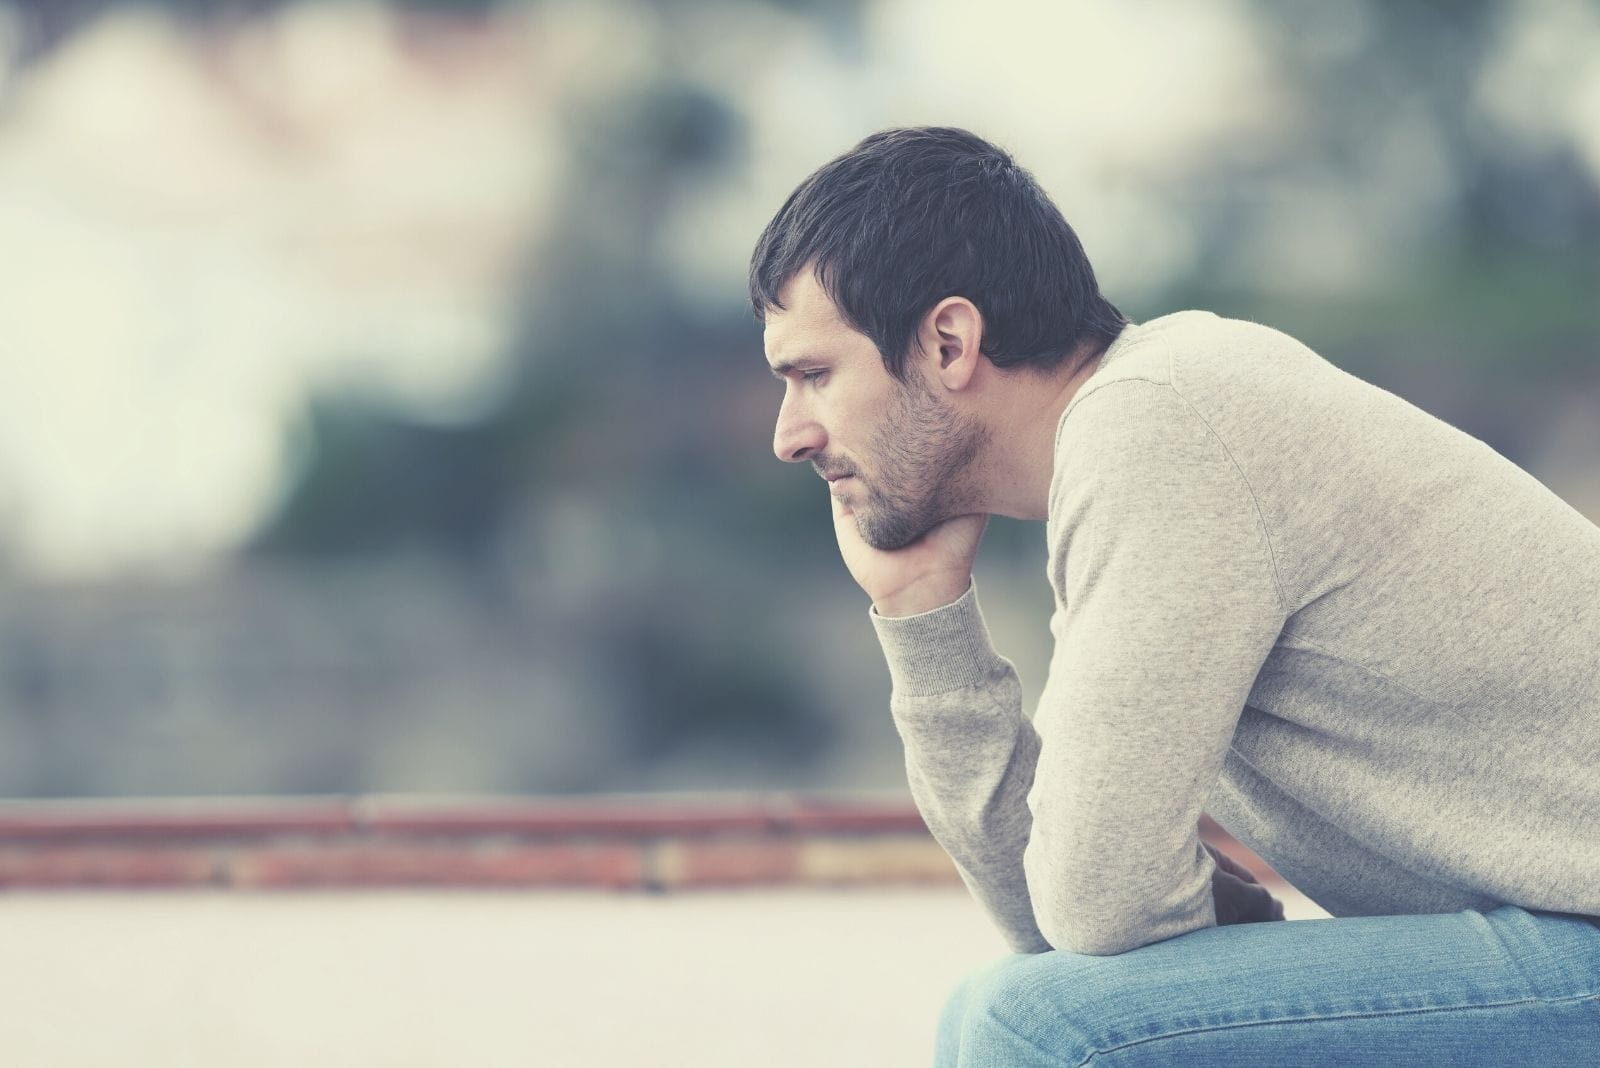 pensive worried man sitting outdoors with head leaning on his hand